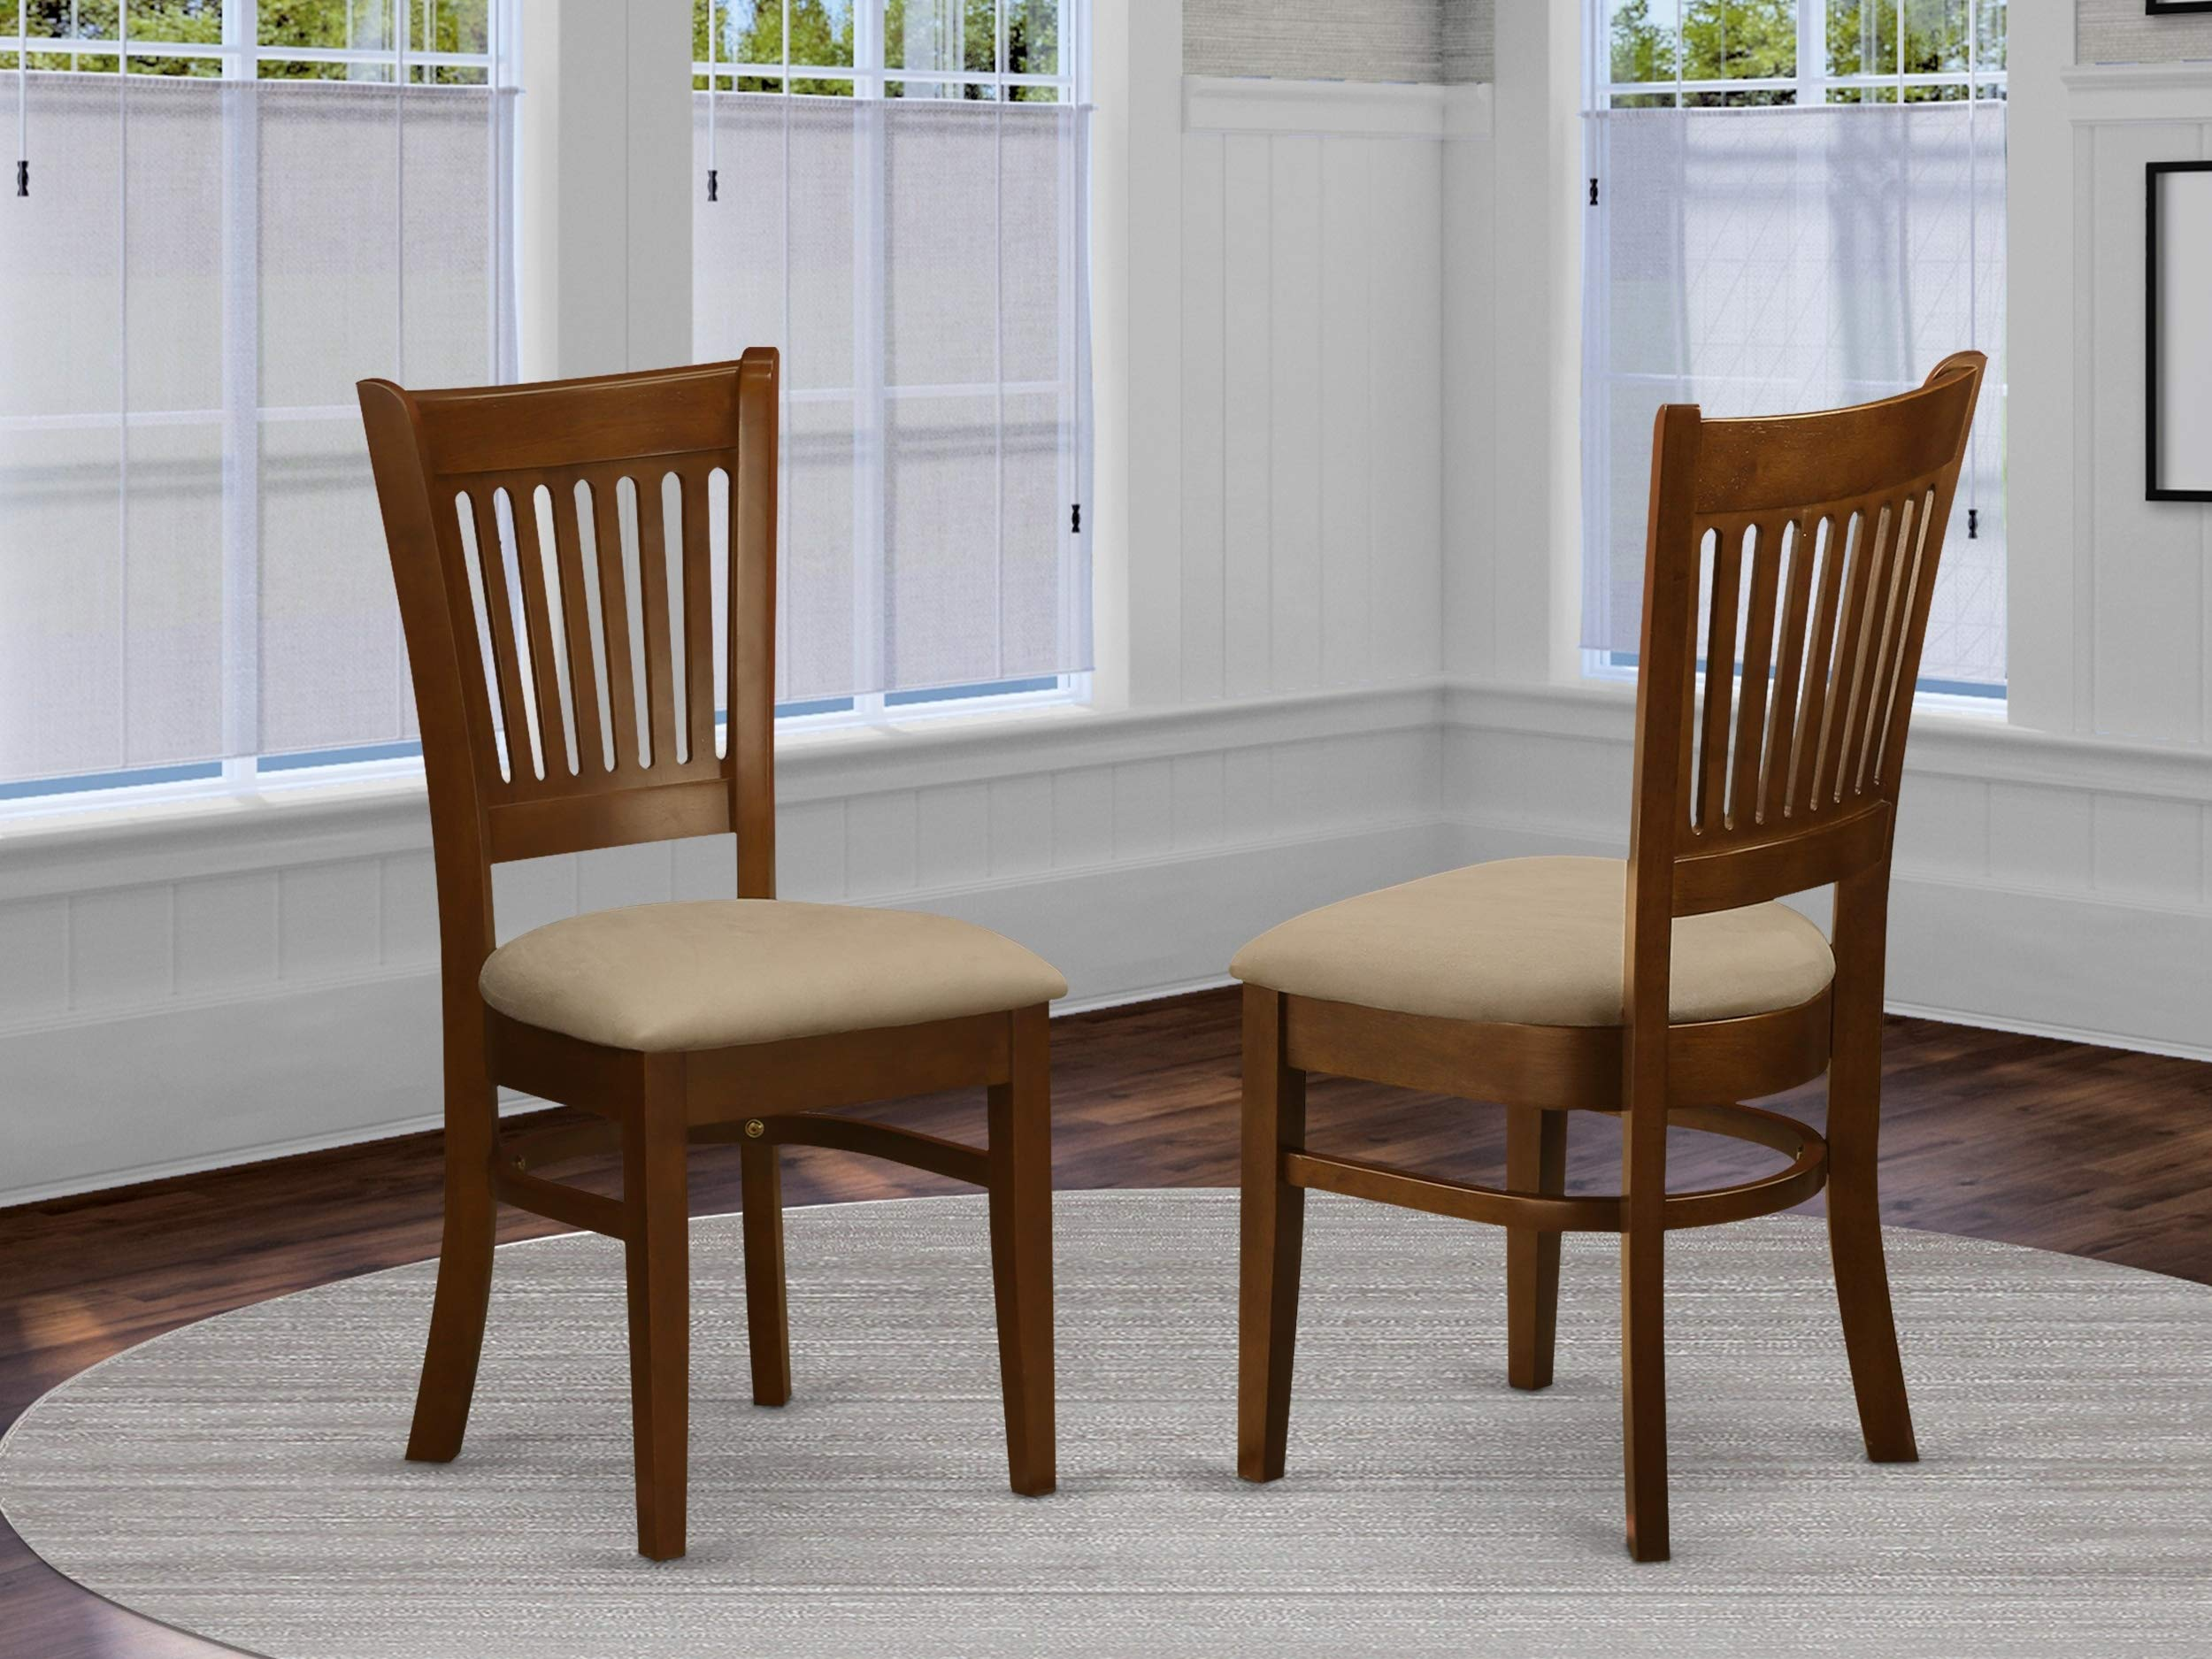 East West Furniture VAC-ESP-C Microfiber Upholstered Seat Chairs for Dining Room, Espresso Finish, Set of 2 by East West Furniture